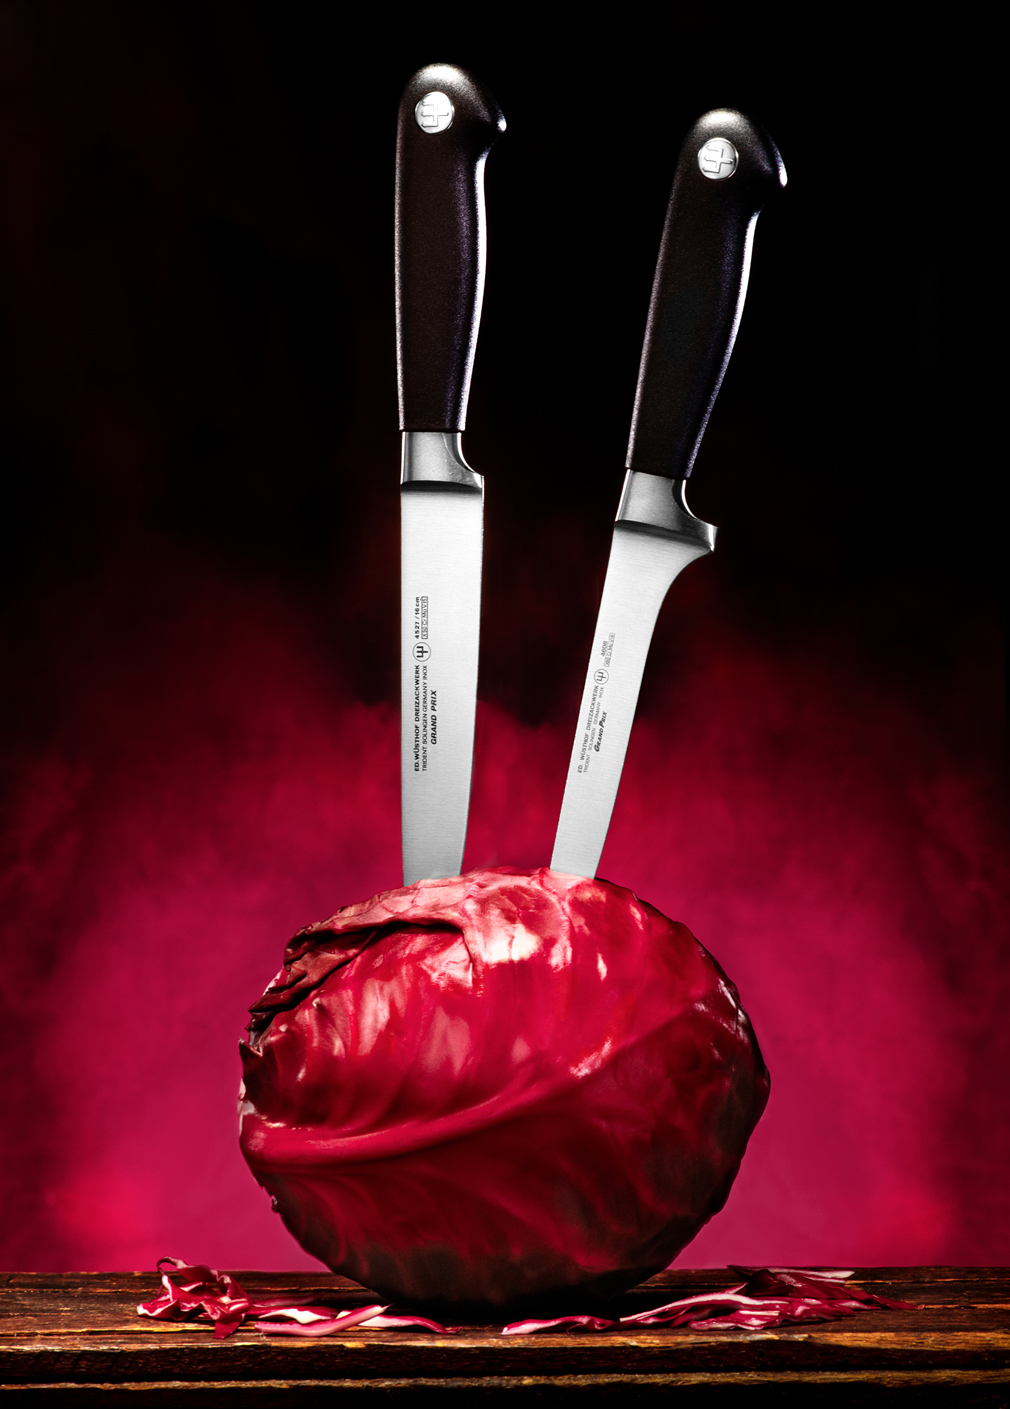 photo of knives and cutlery